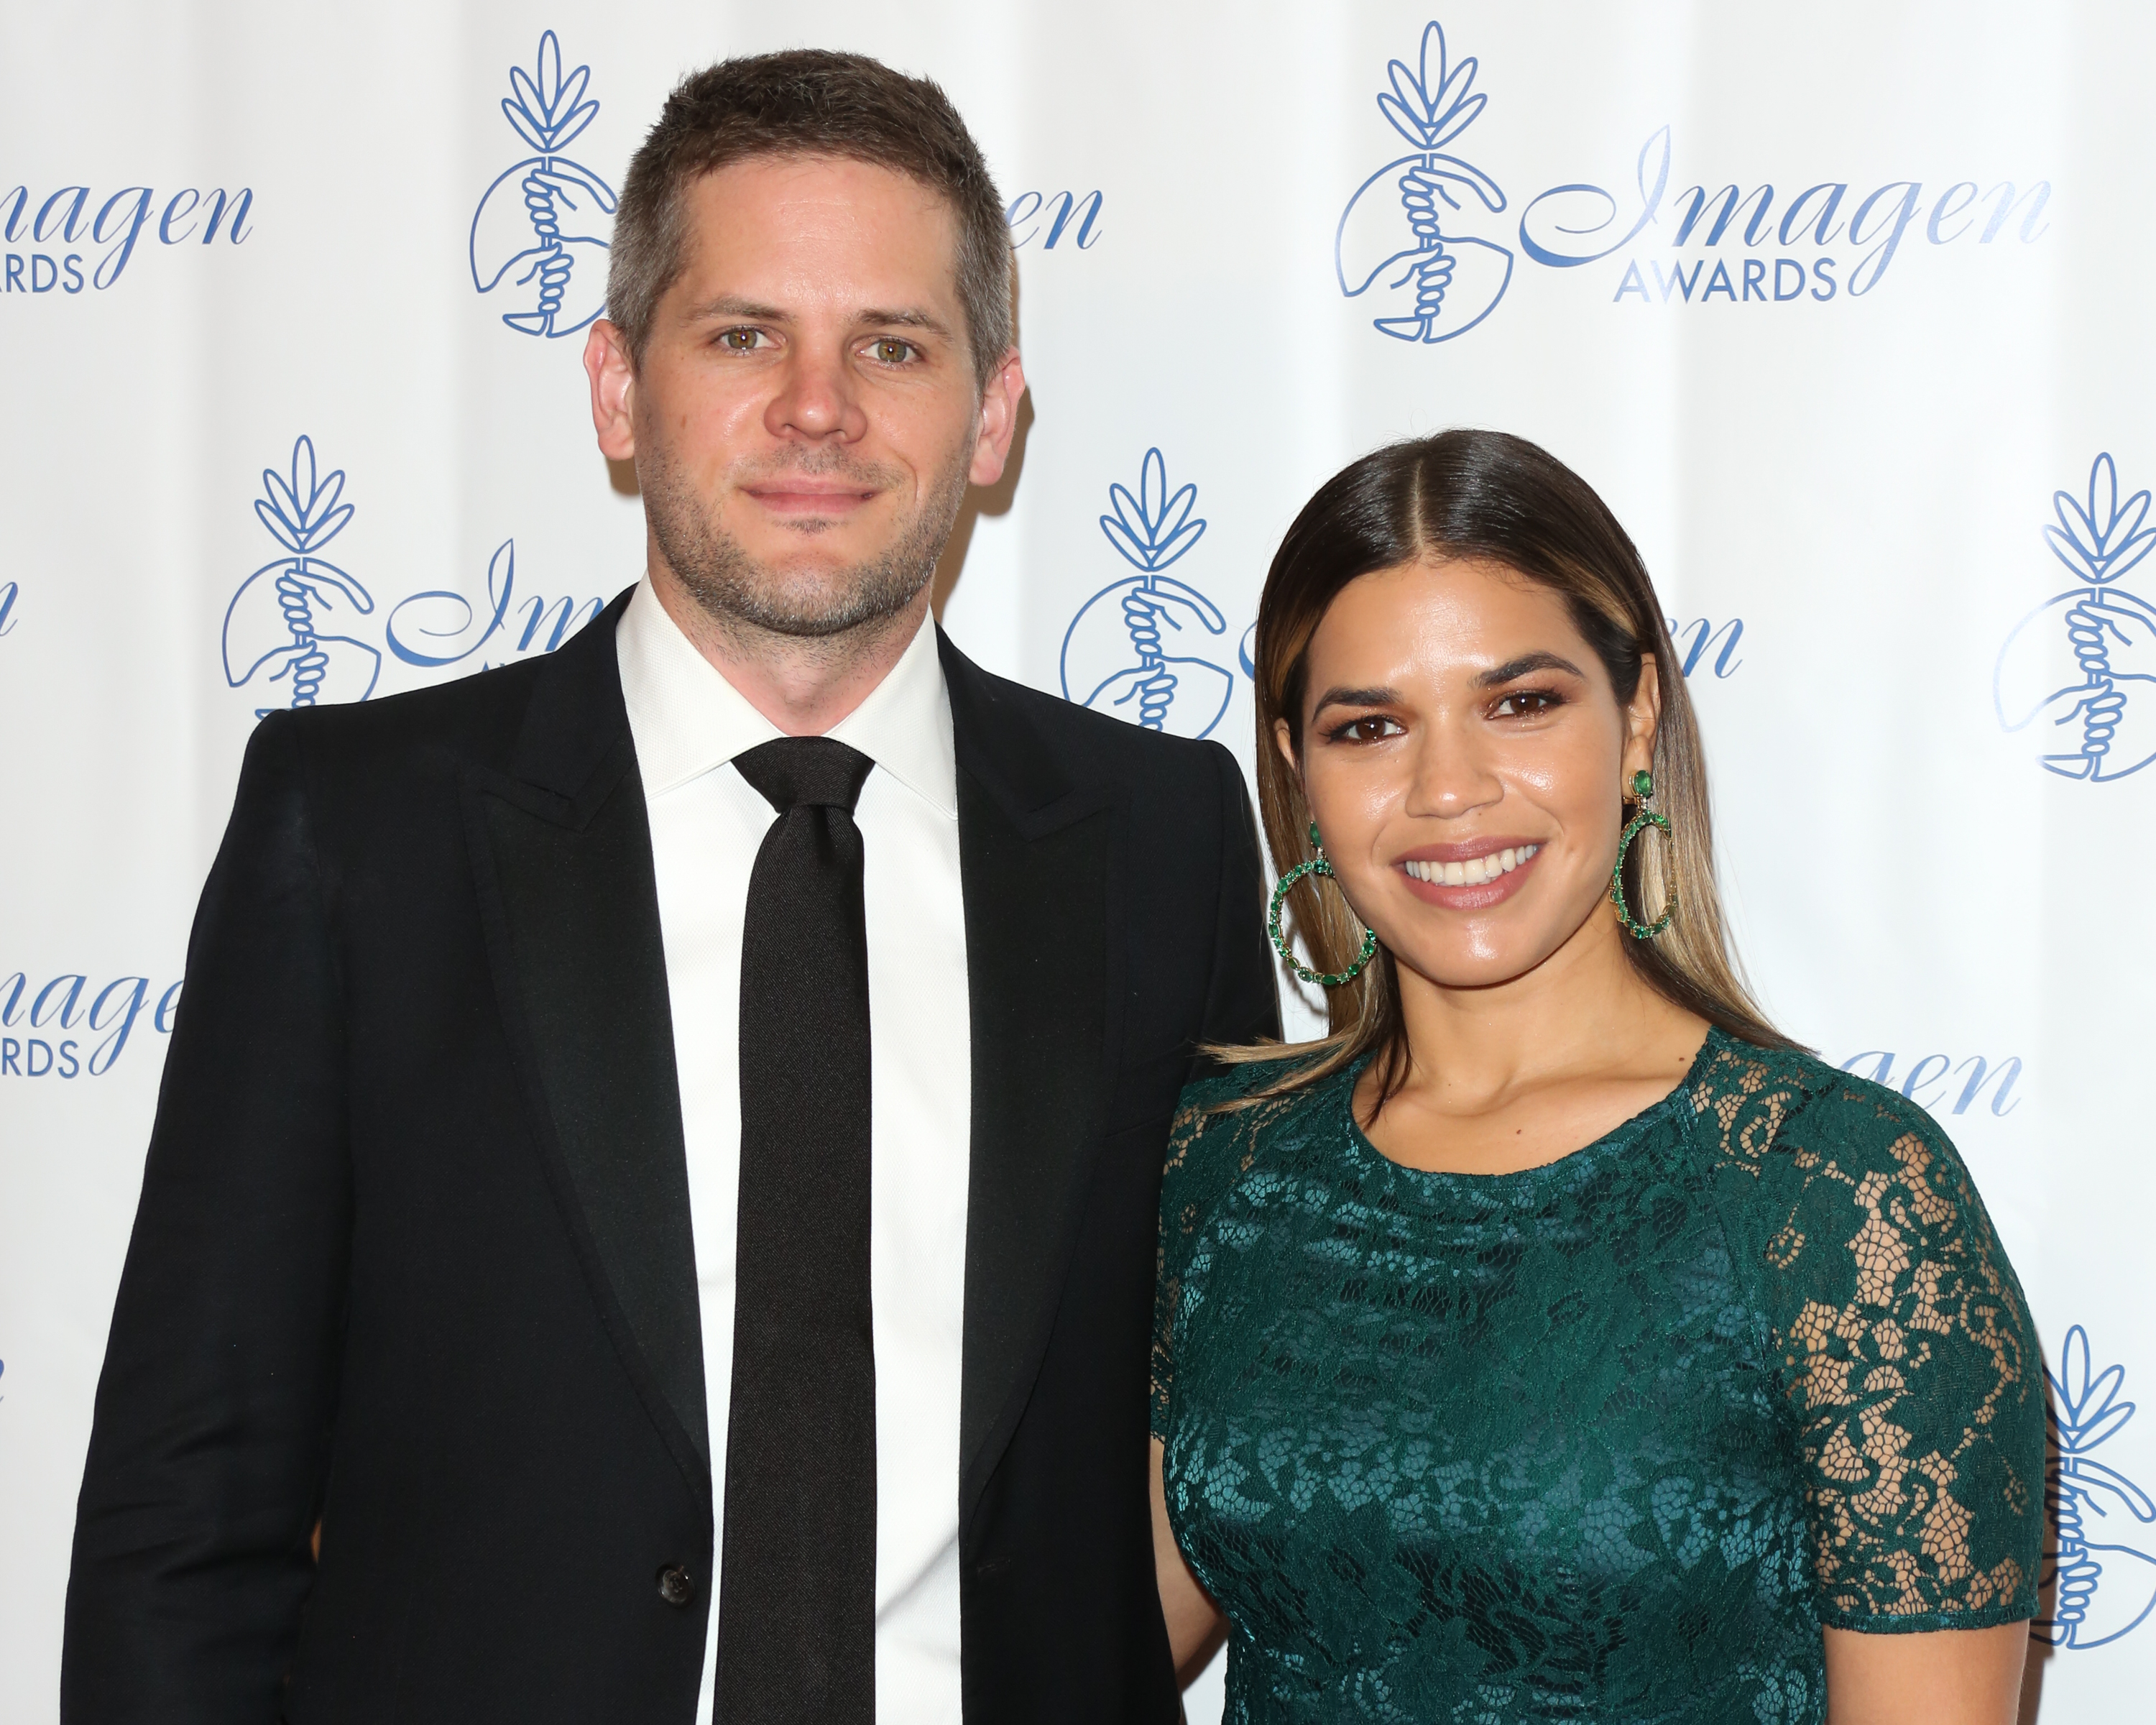 America Ferrera and Ryan Piers Williams at the 32nd Annual Imagen Awards in Beverly Hills, Calif. on Aug. 18, 2017.